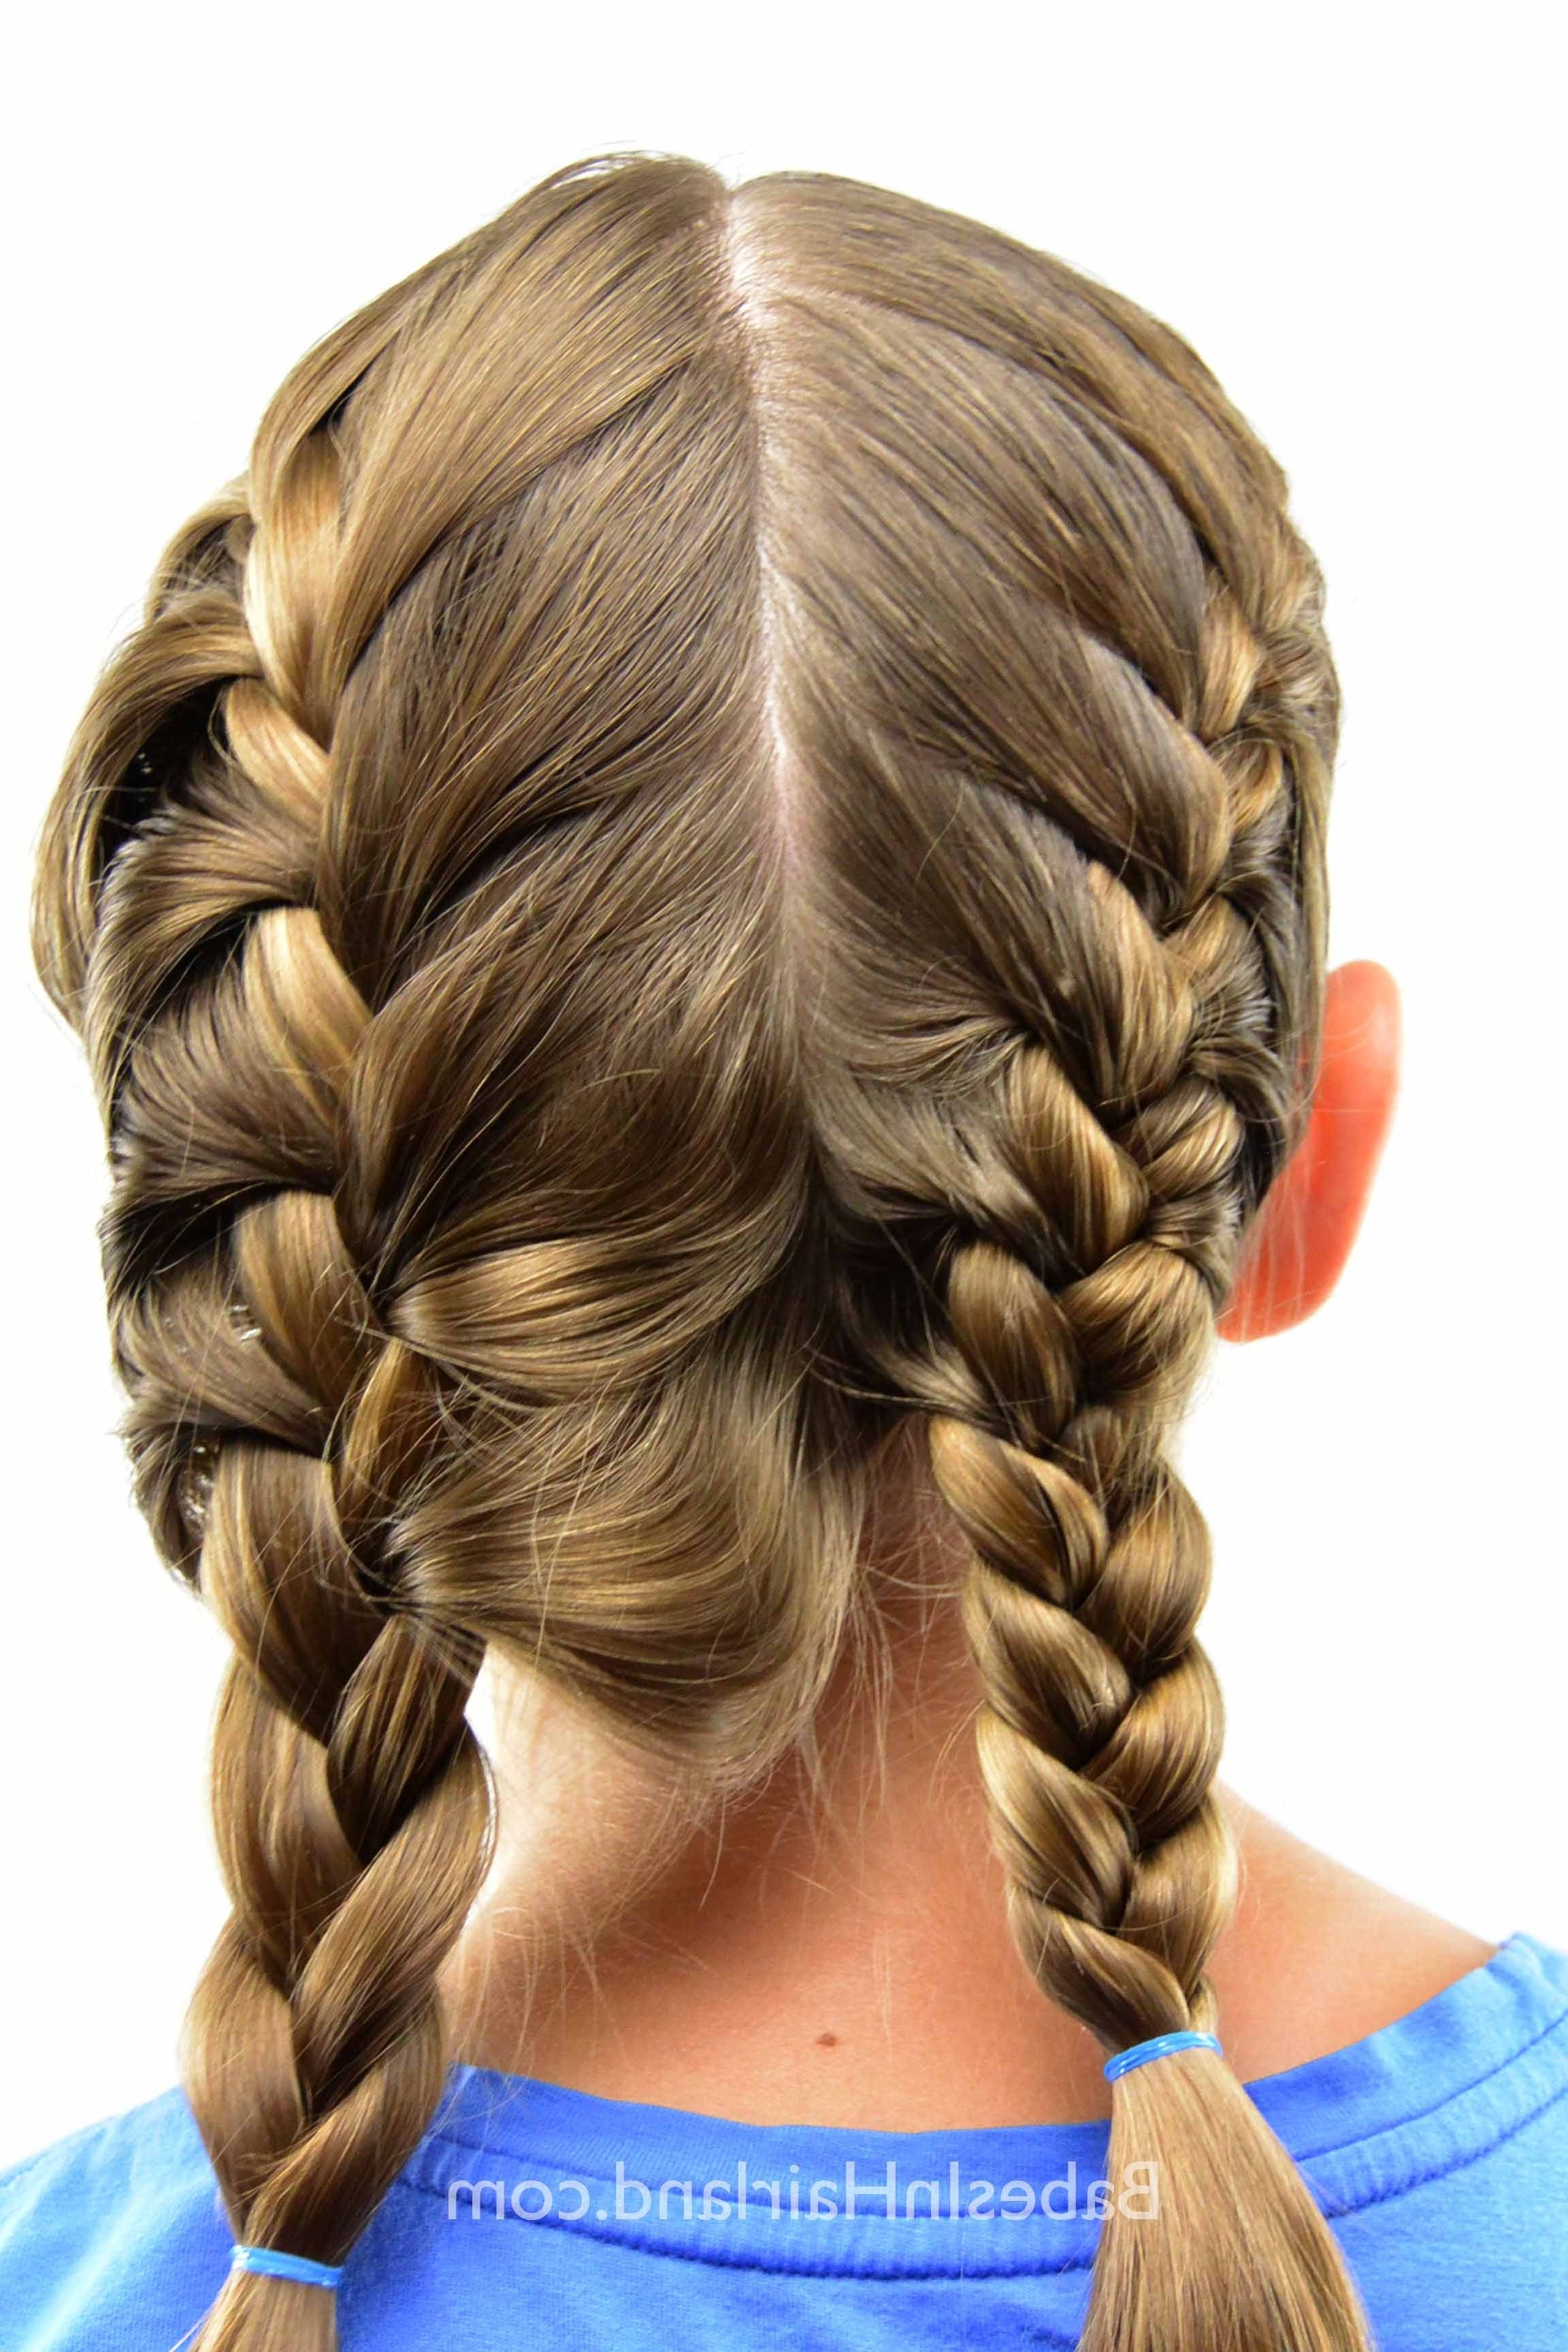 Well Known French Braid Hairstyles With Bubbles For How To Get A Tight French Braid – Babes In Hairland (View 15 of 15)